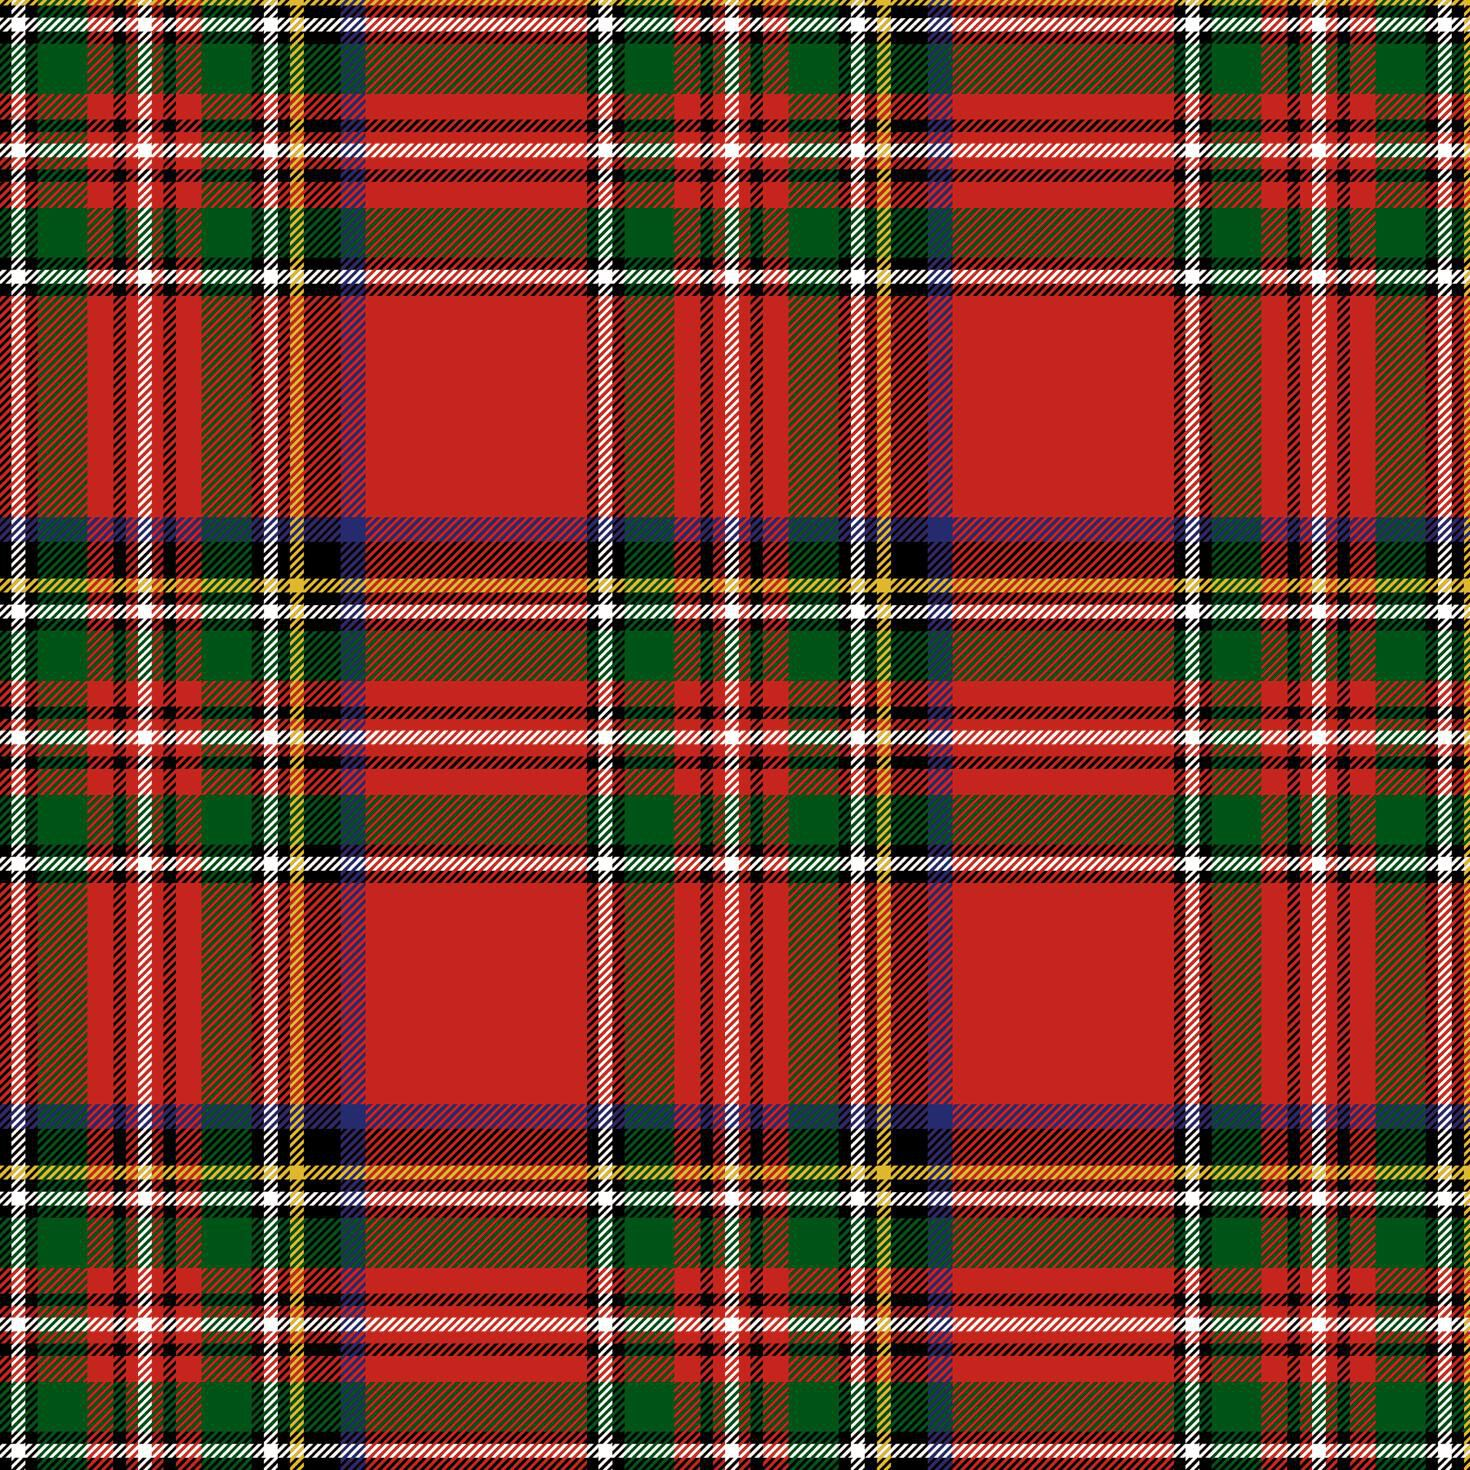 red plaid jumbo christmas wrapping paper roll, 100 sq ftred plaid jumbo christmas wrapping paper roll, 100 sq ft wrapping paper hallmark